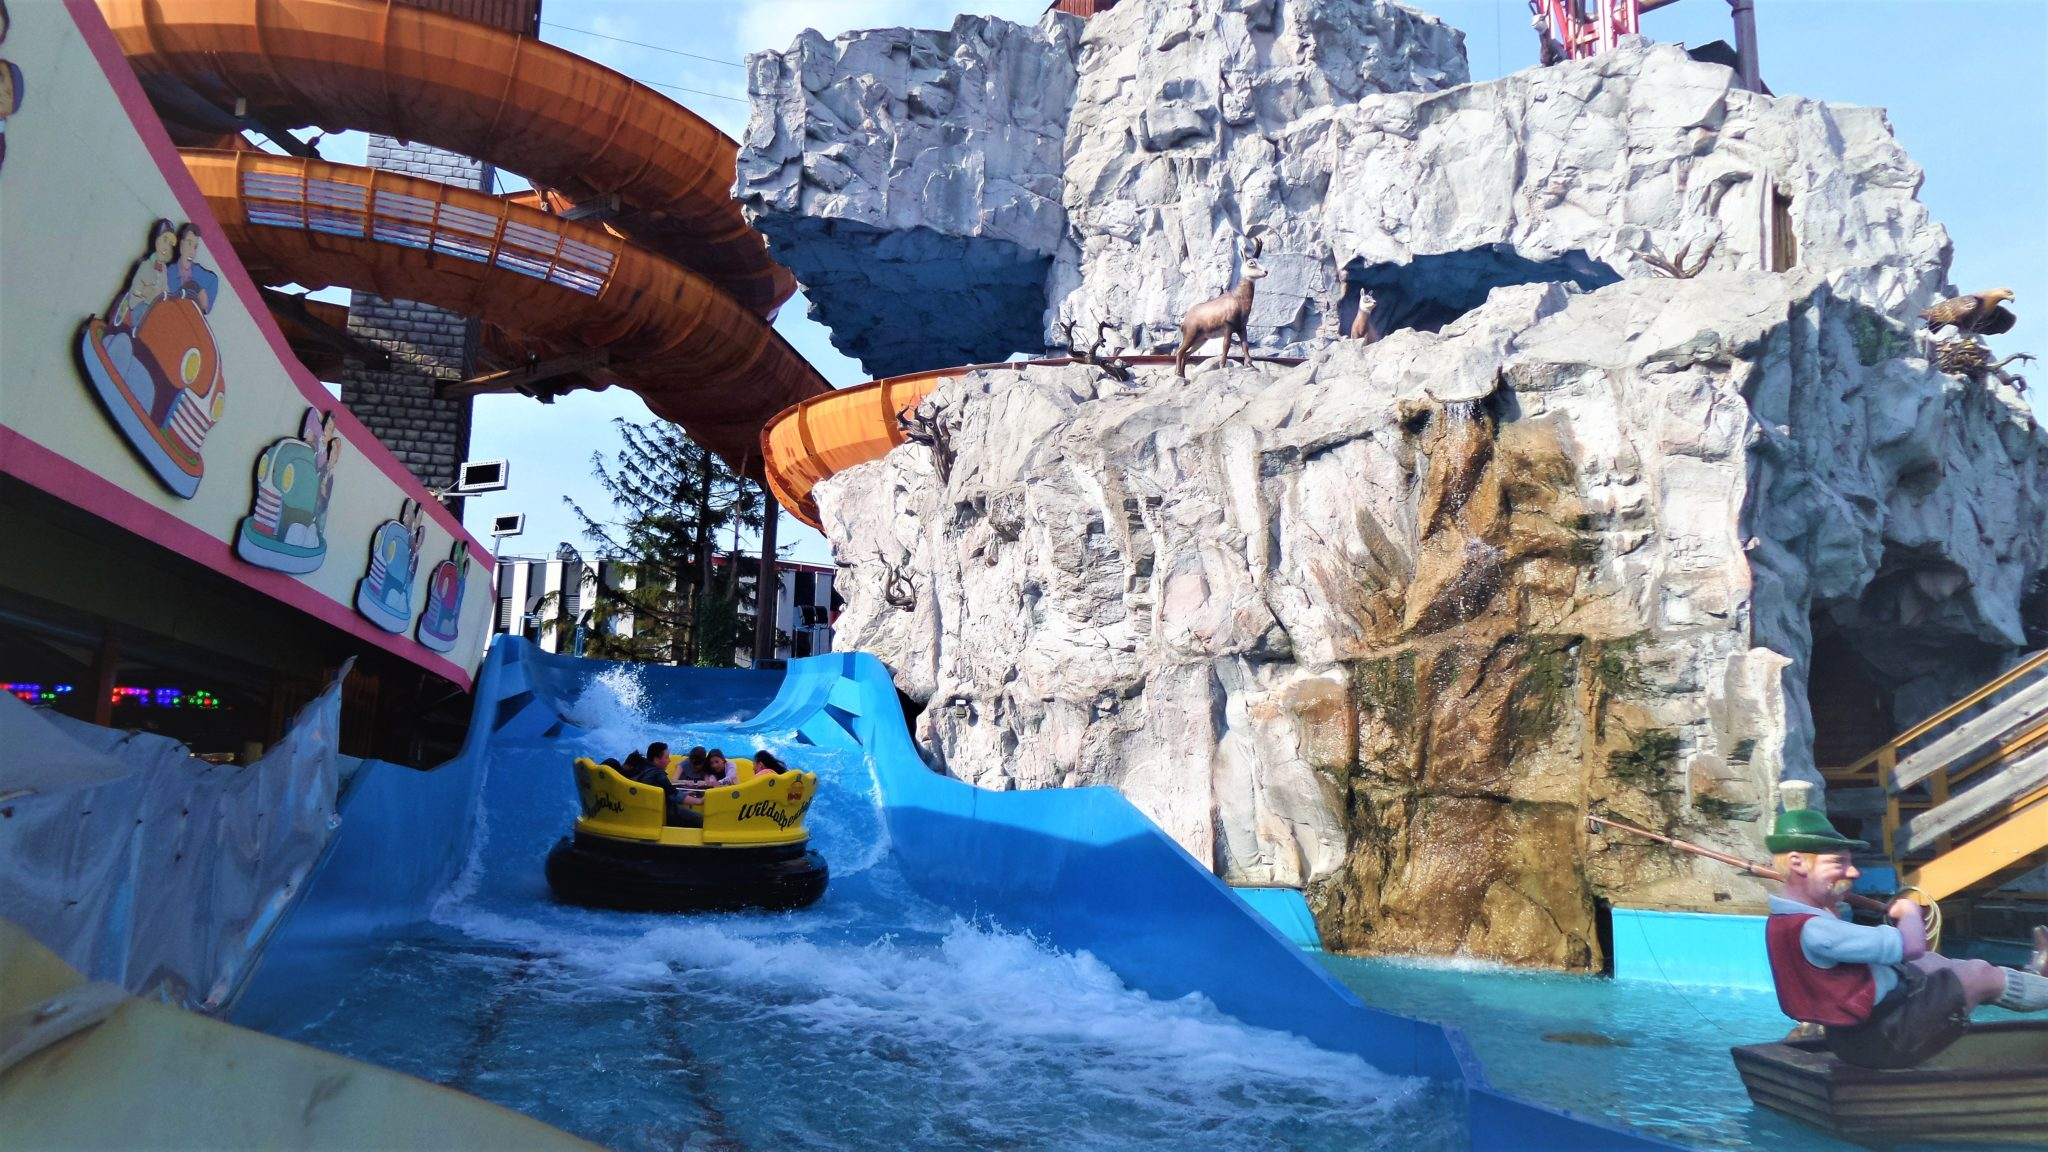 Prater water ride, 2 days in Vienna, Austria